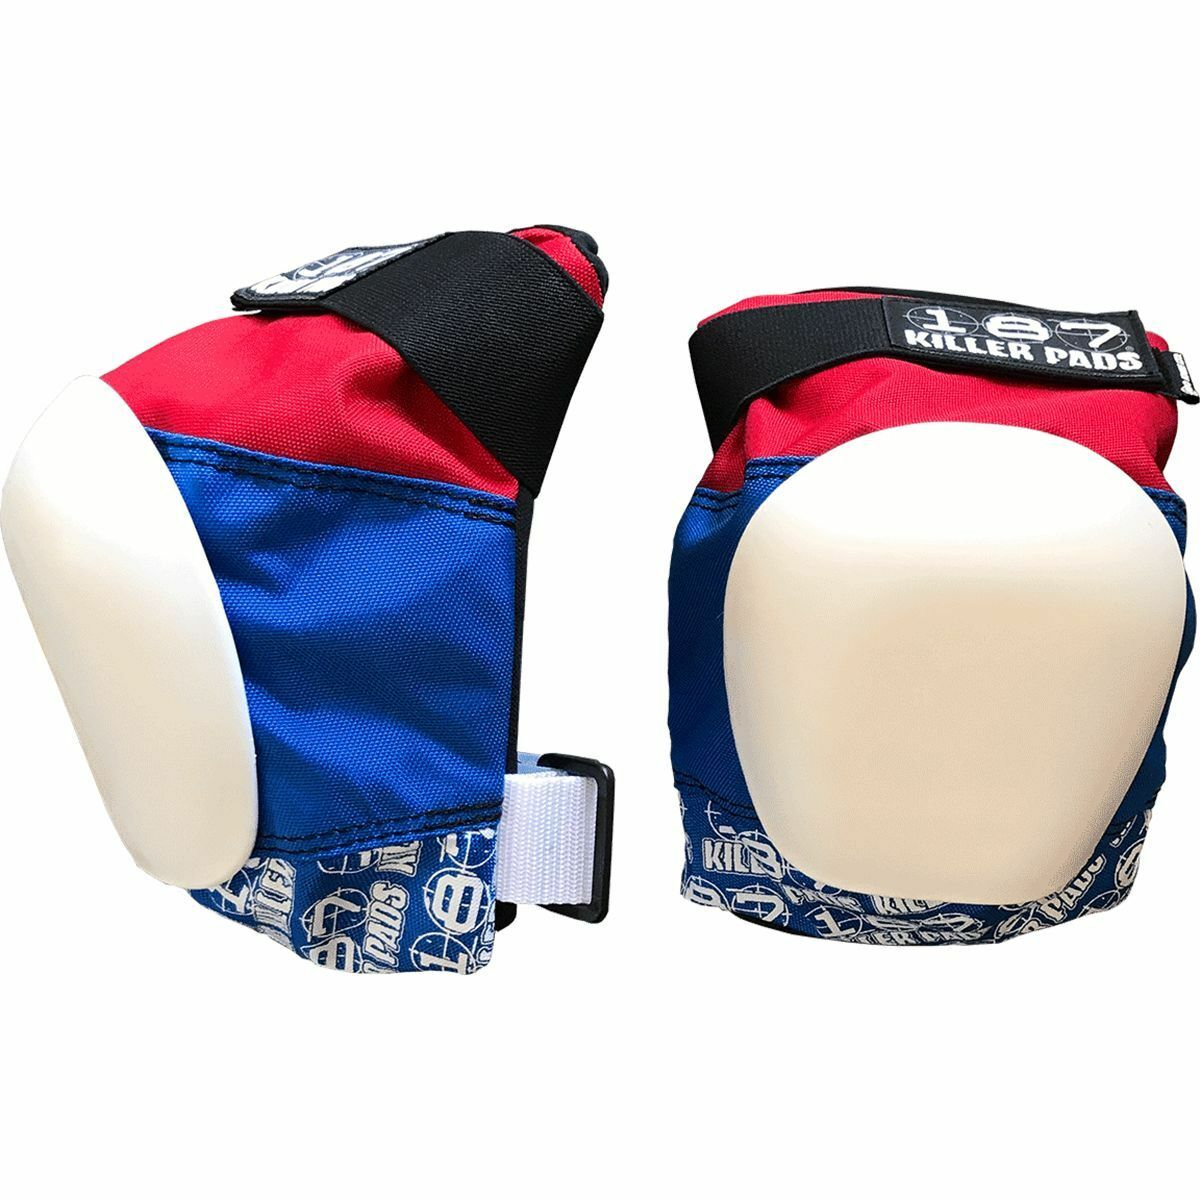 187 Pro Knee Pads Xs-Red White blue